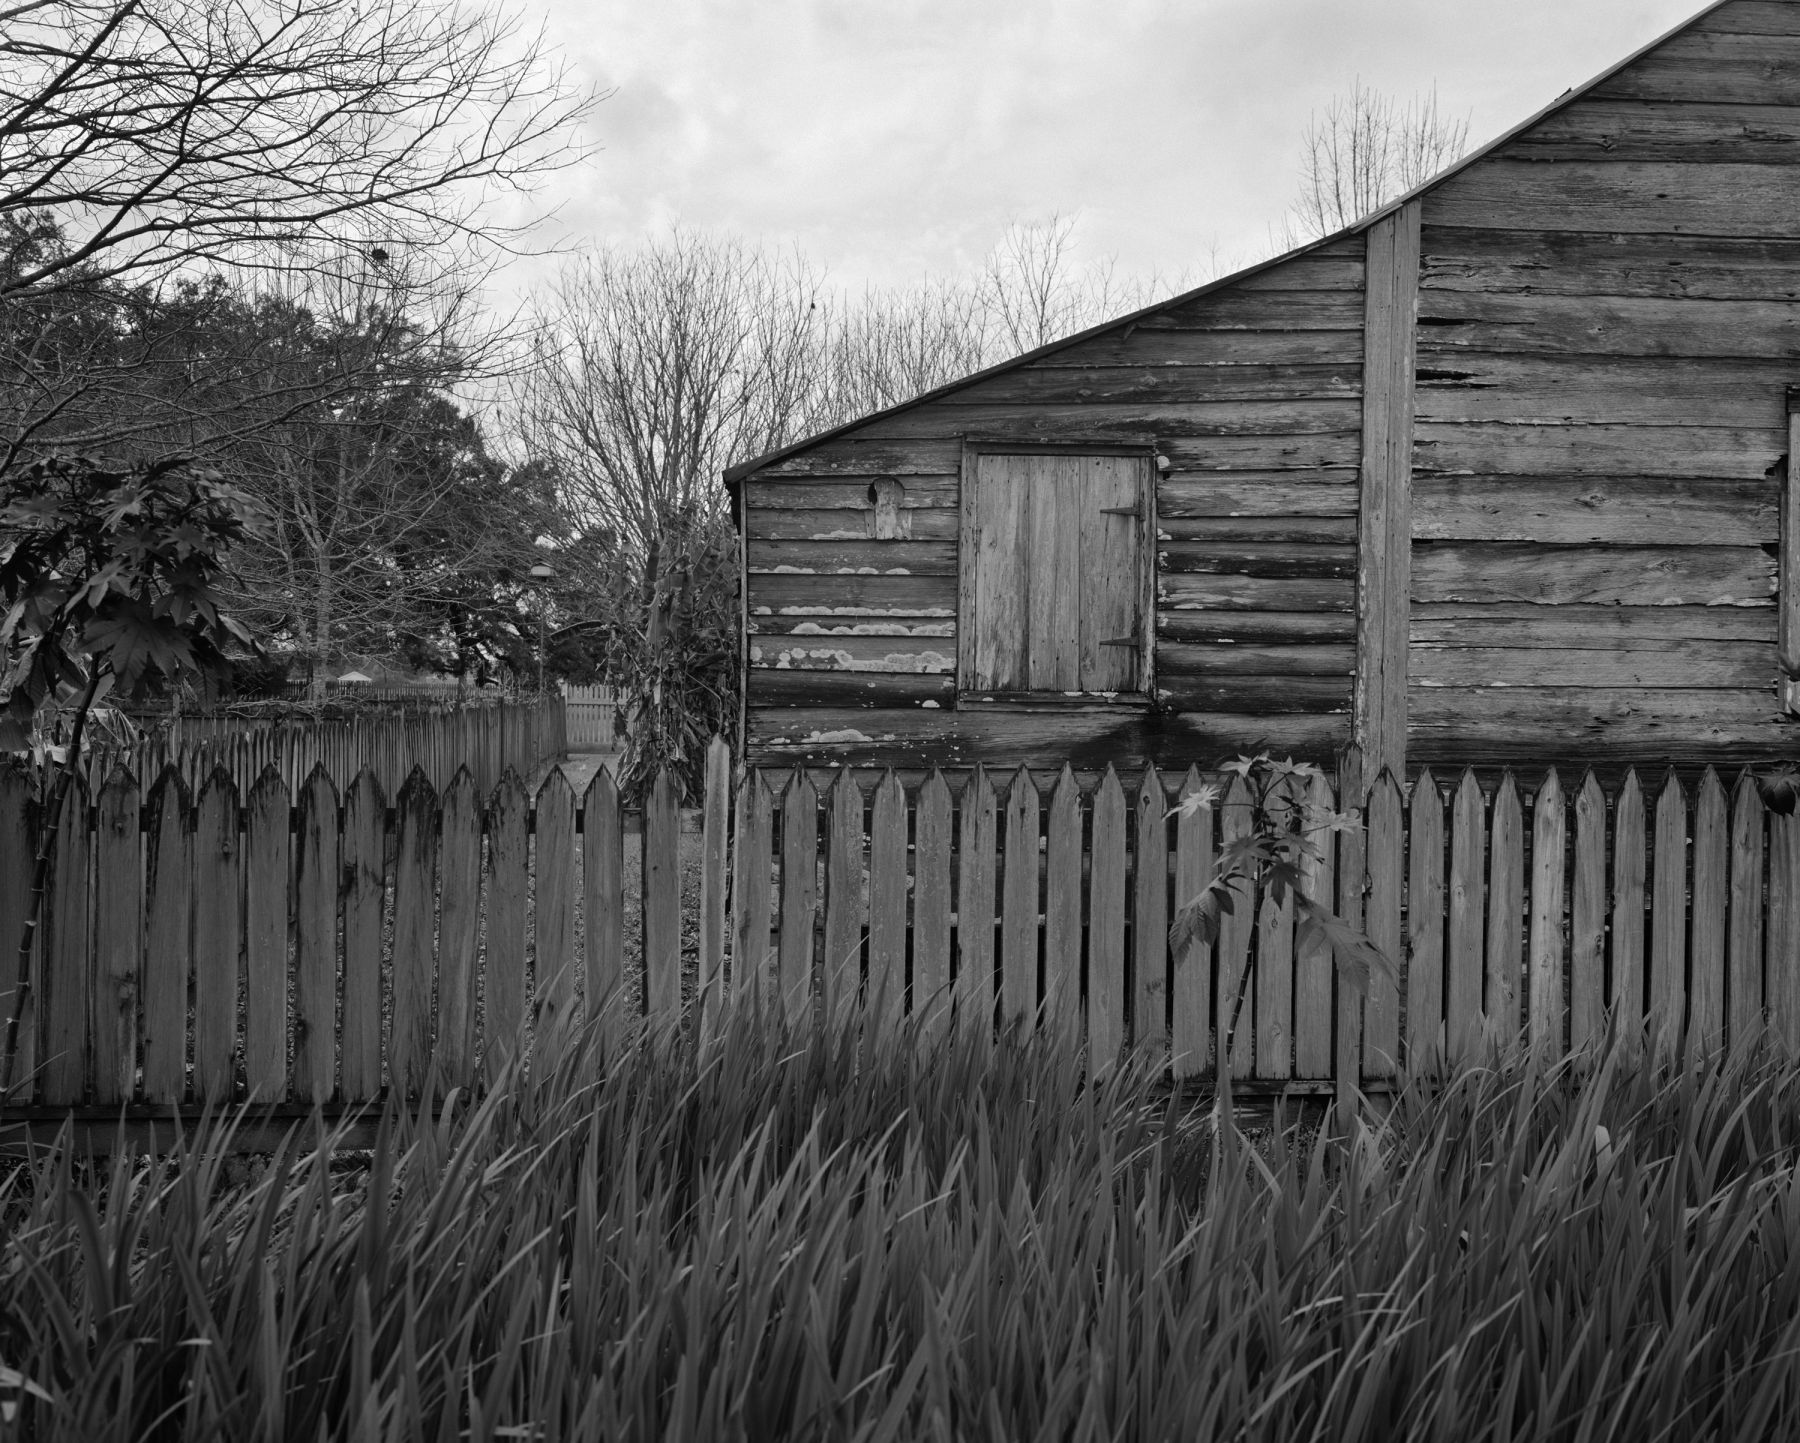 Tall Grass, Fence and Cabin large image